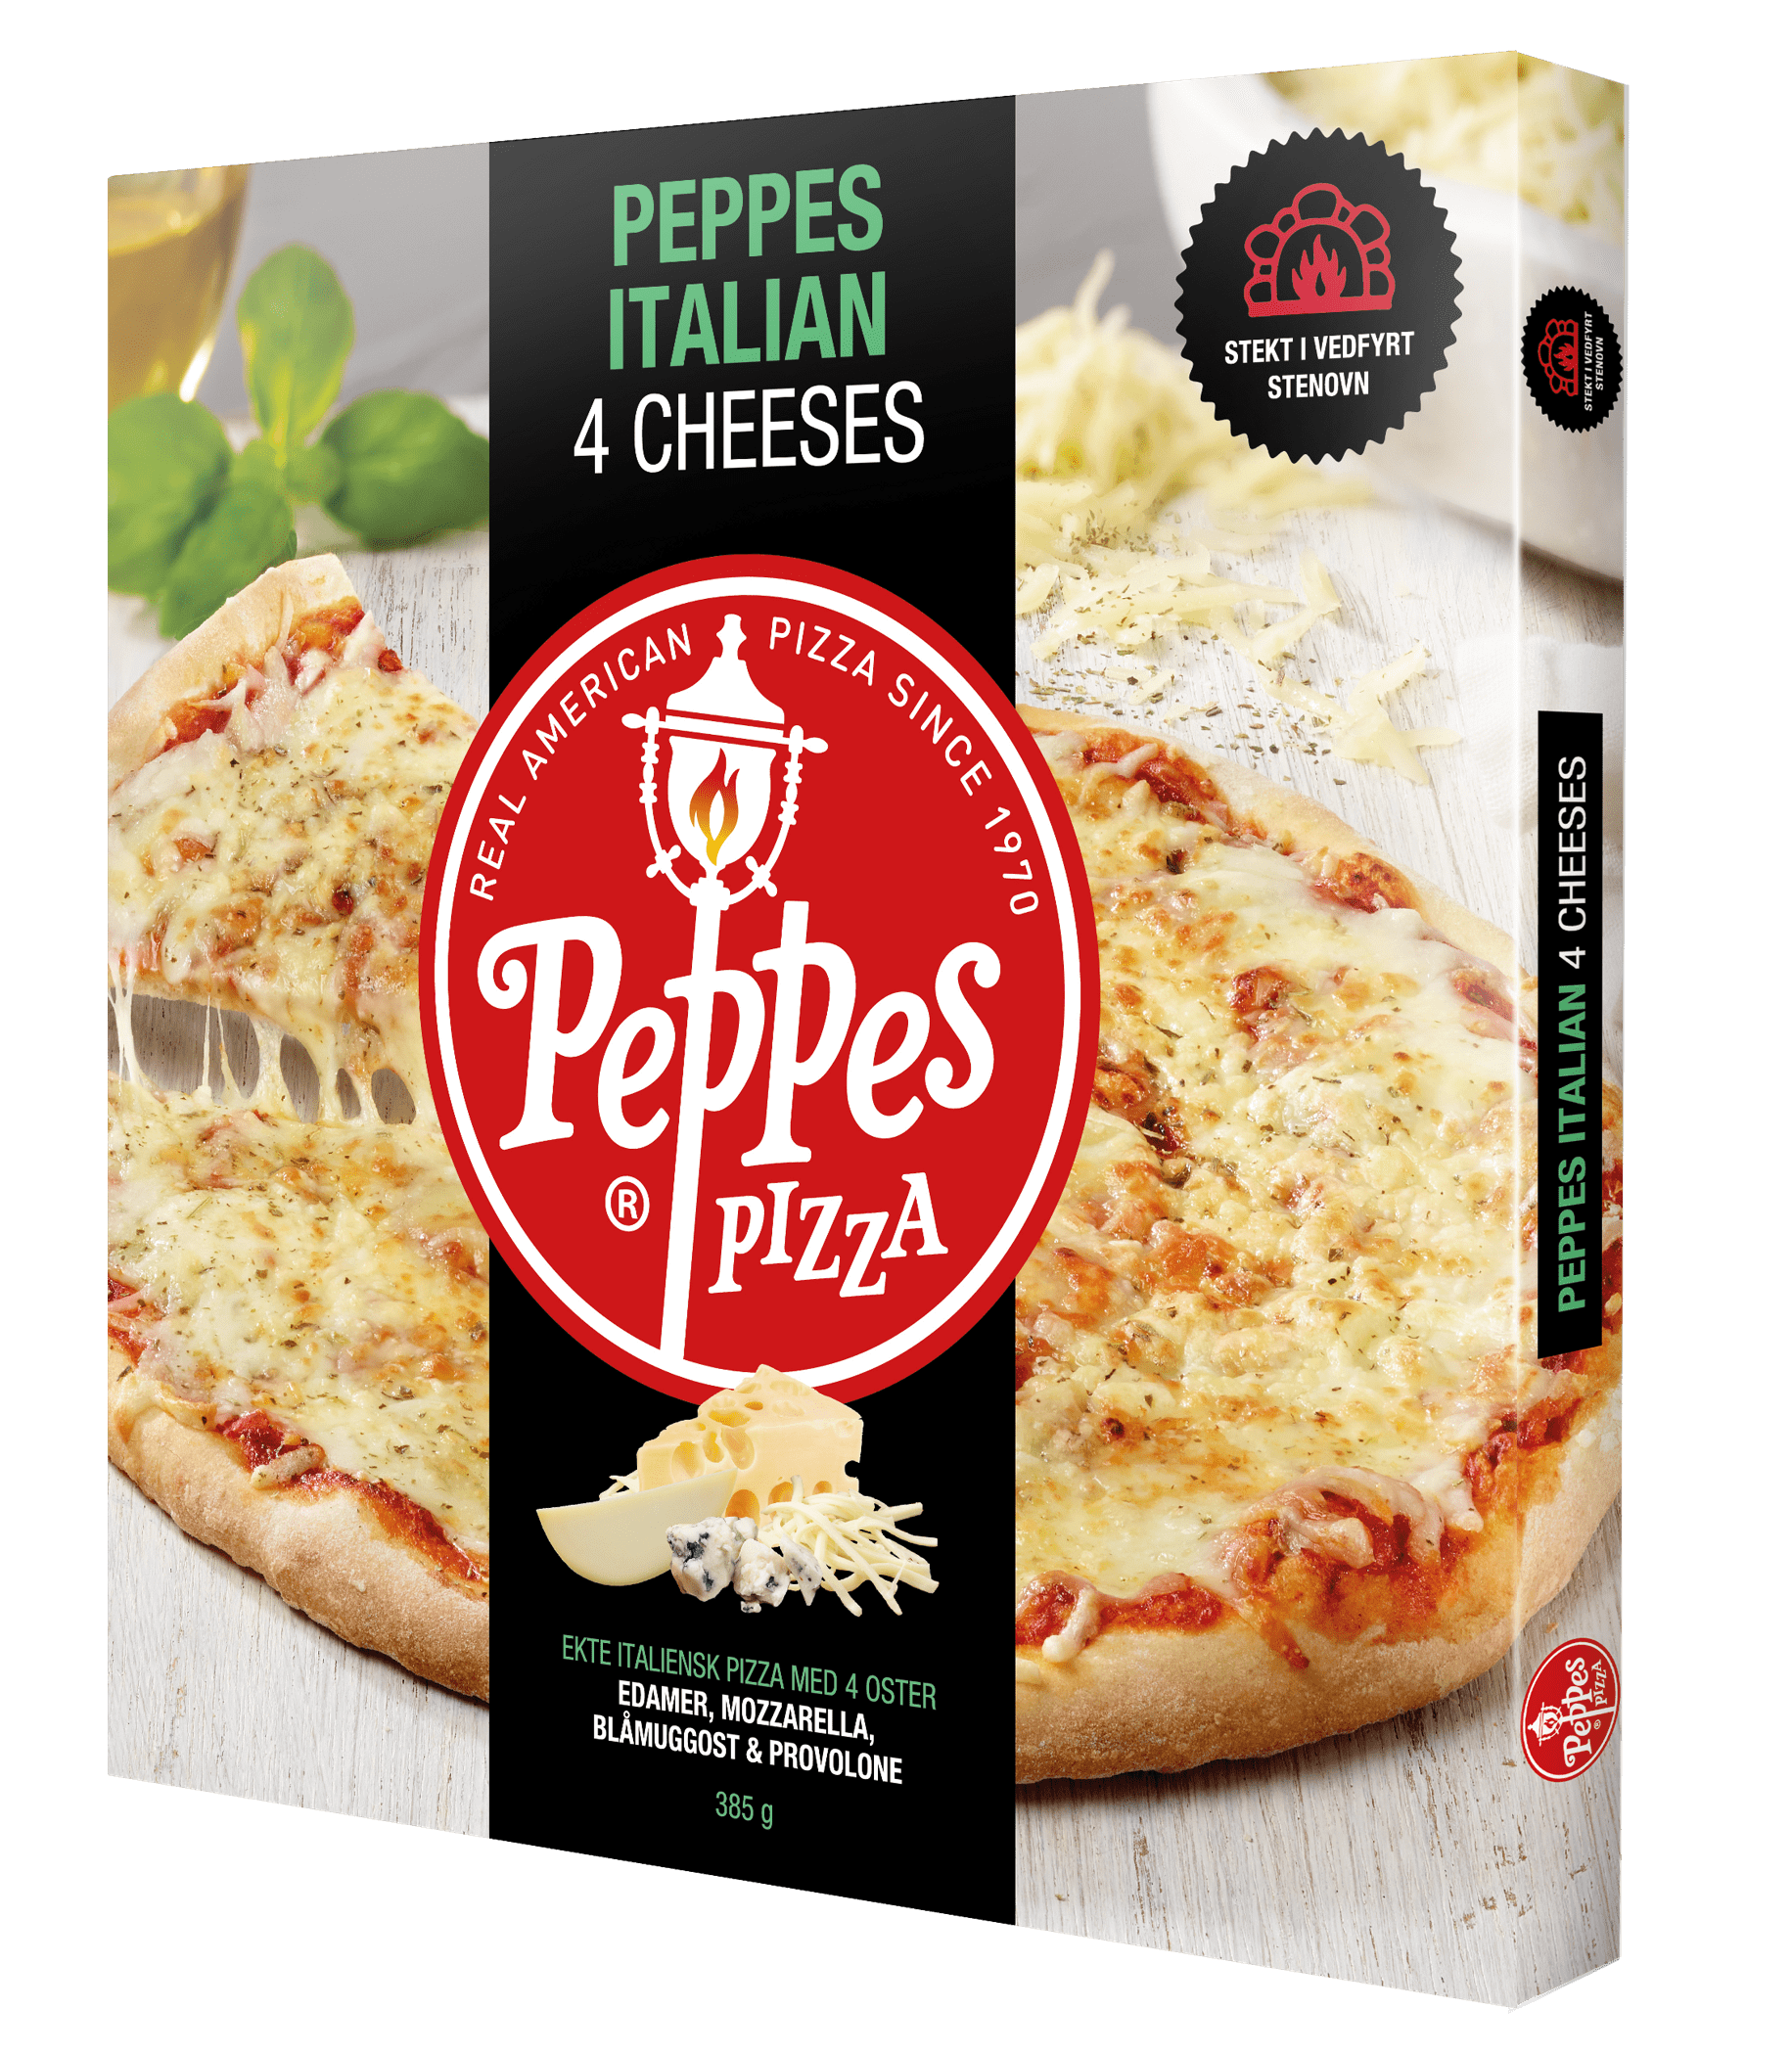 Peppes_Italian_4cheeses_3D_mockup.png